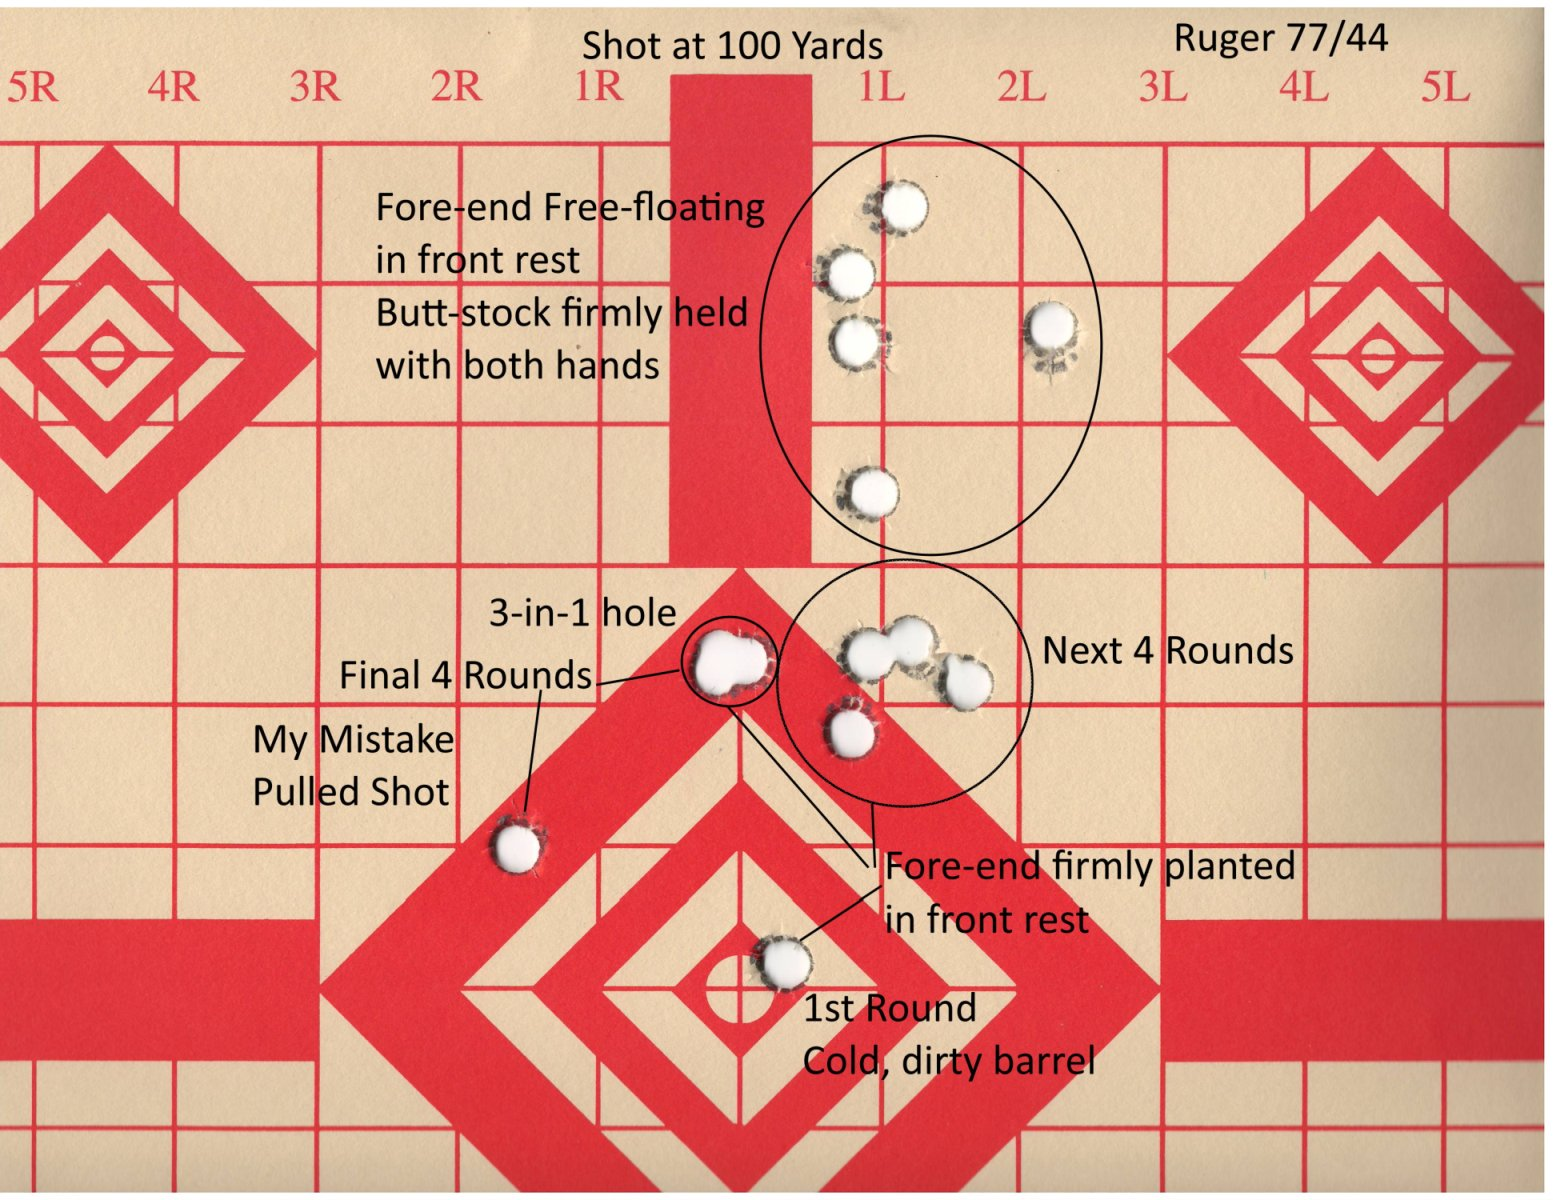 100 yard test group, trying different methods of controlling the Ruger 77/44.